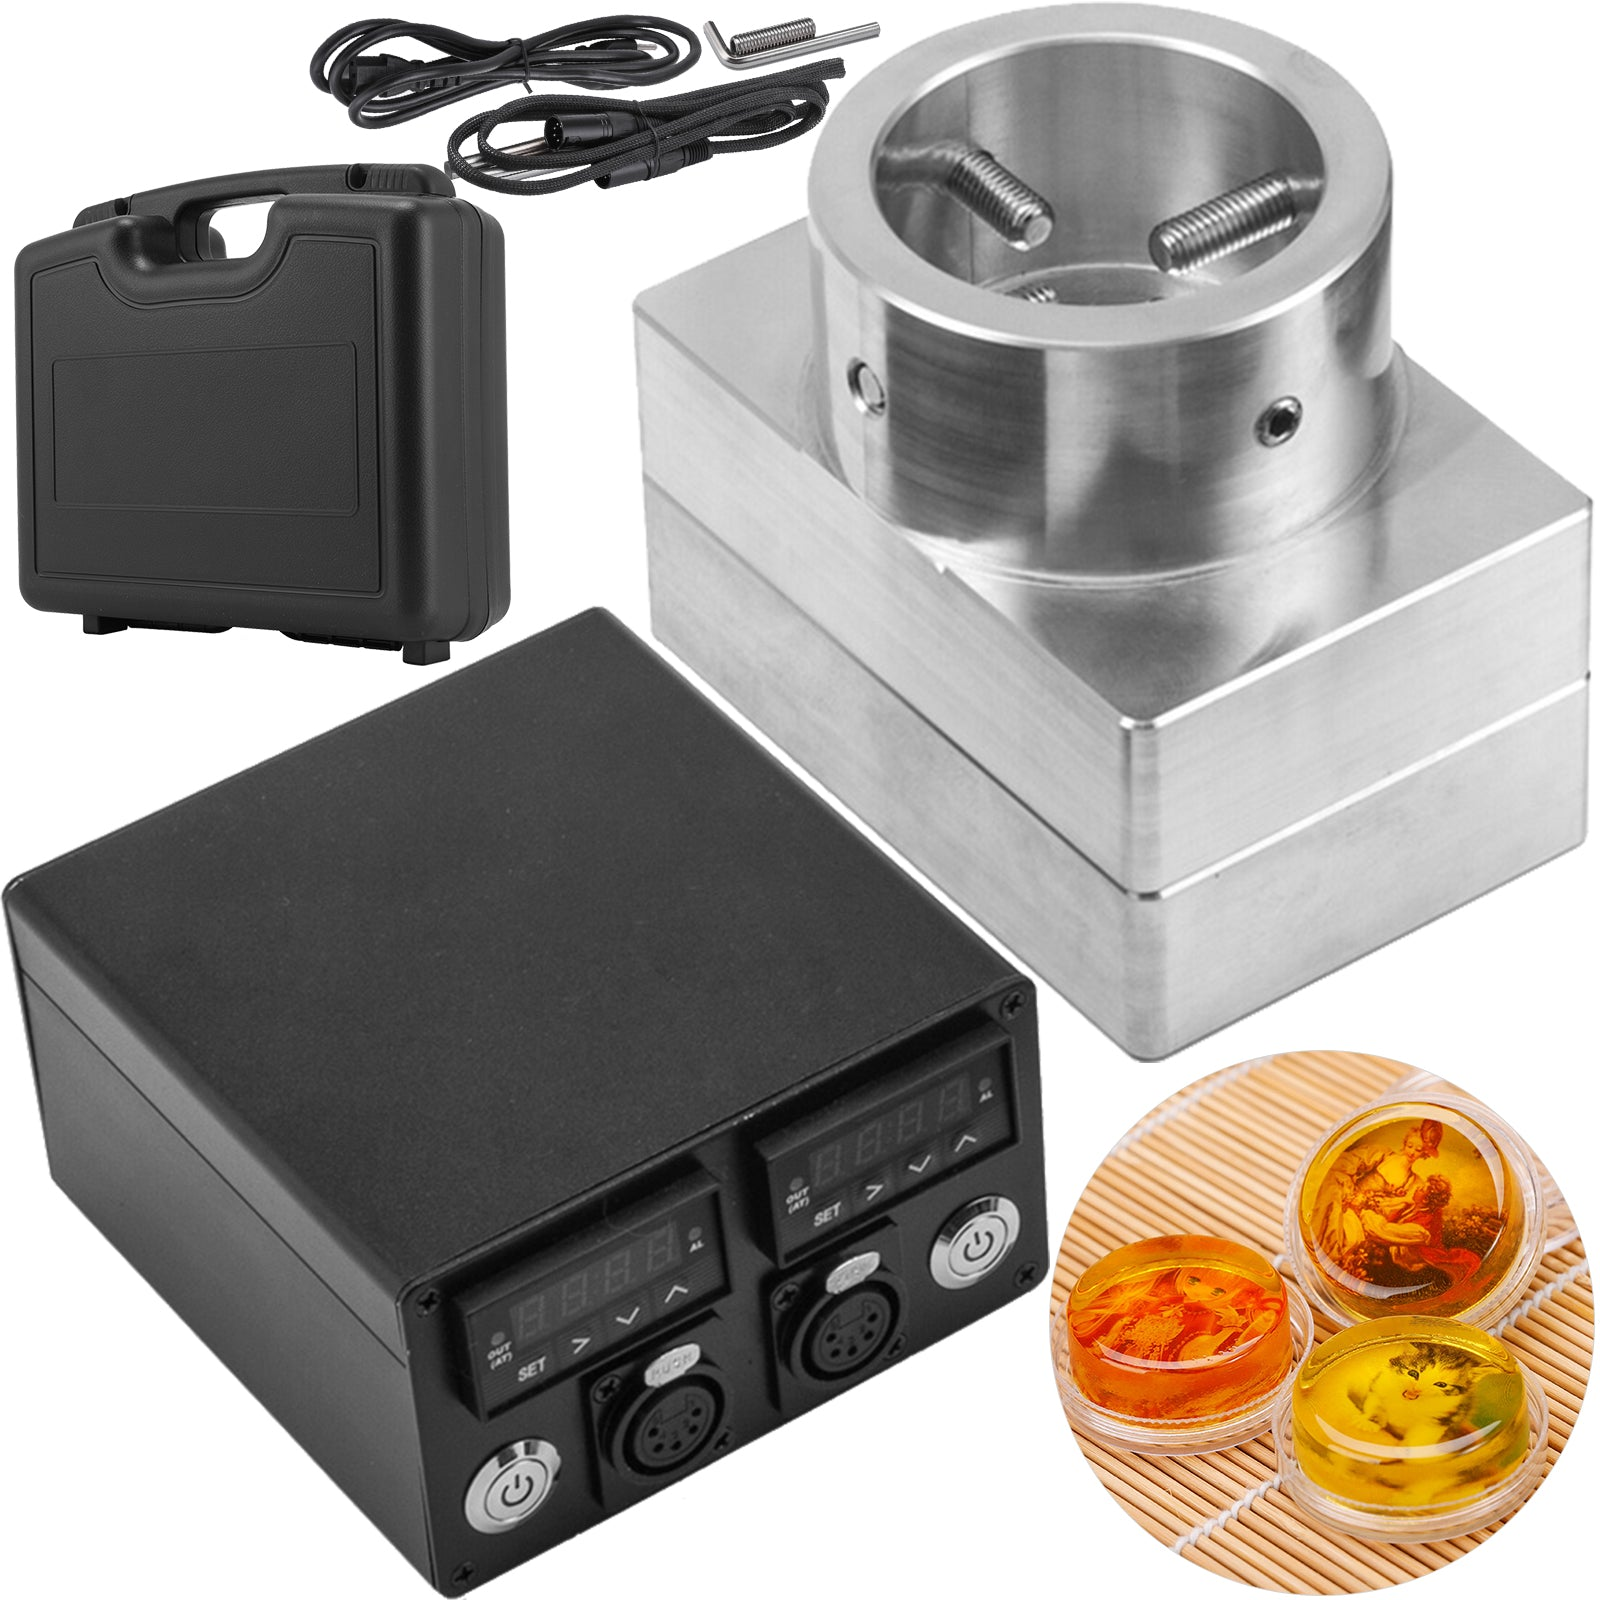 "3x5"" Rosin Press Plates Kit With Heating Rod Rosin Press Machine Temp Controller"